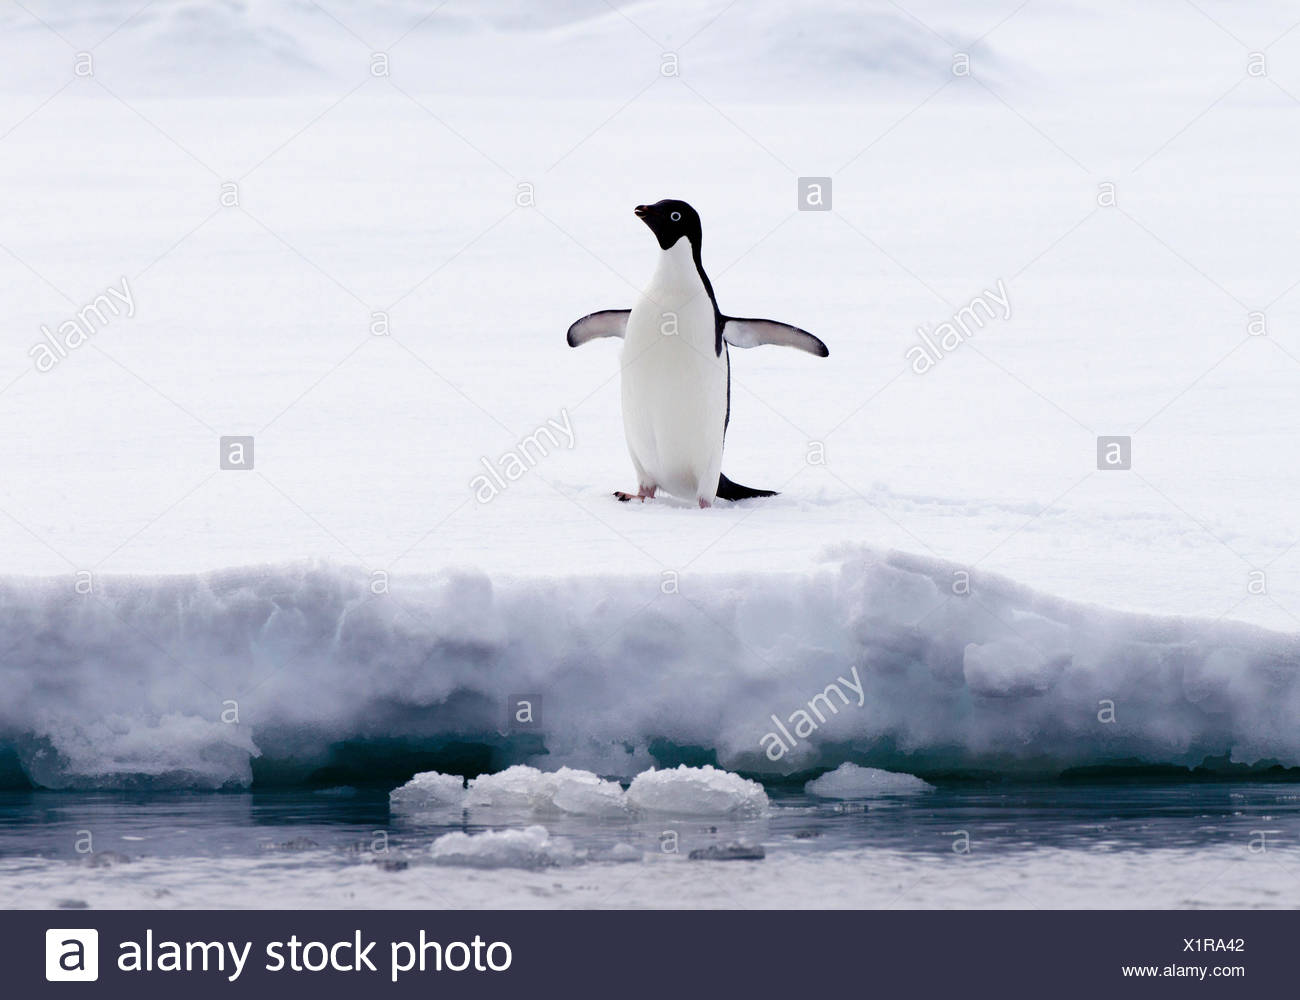 Adelie Penguin on ice floe in the southern ocean, 180 miles north of East Antarctica, Antarctica - Stock Image